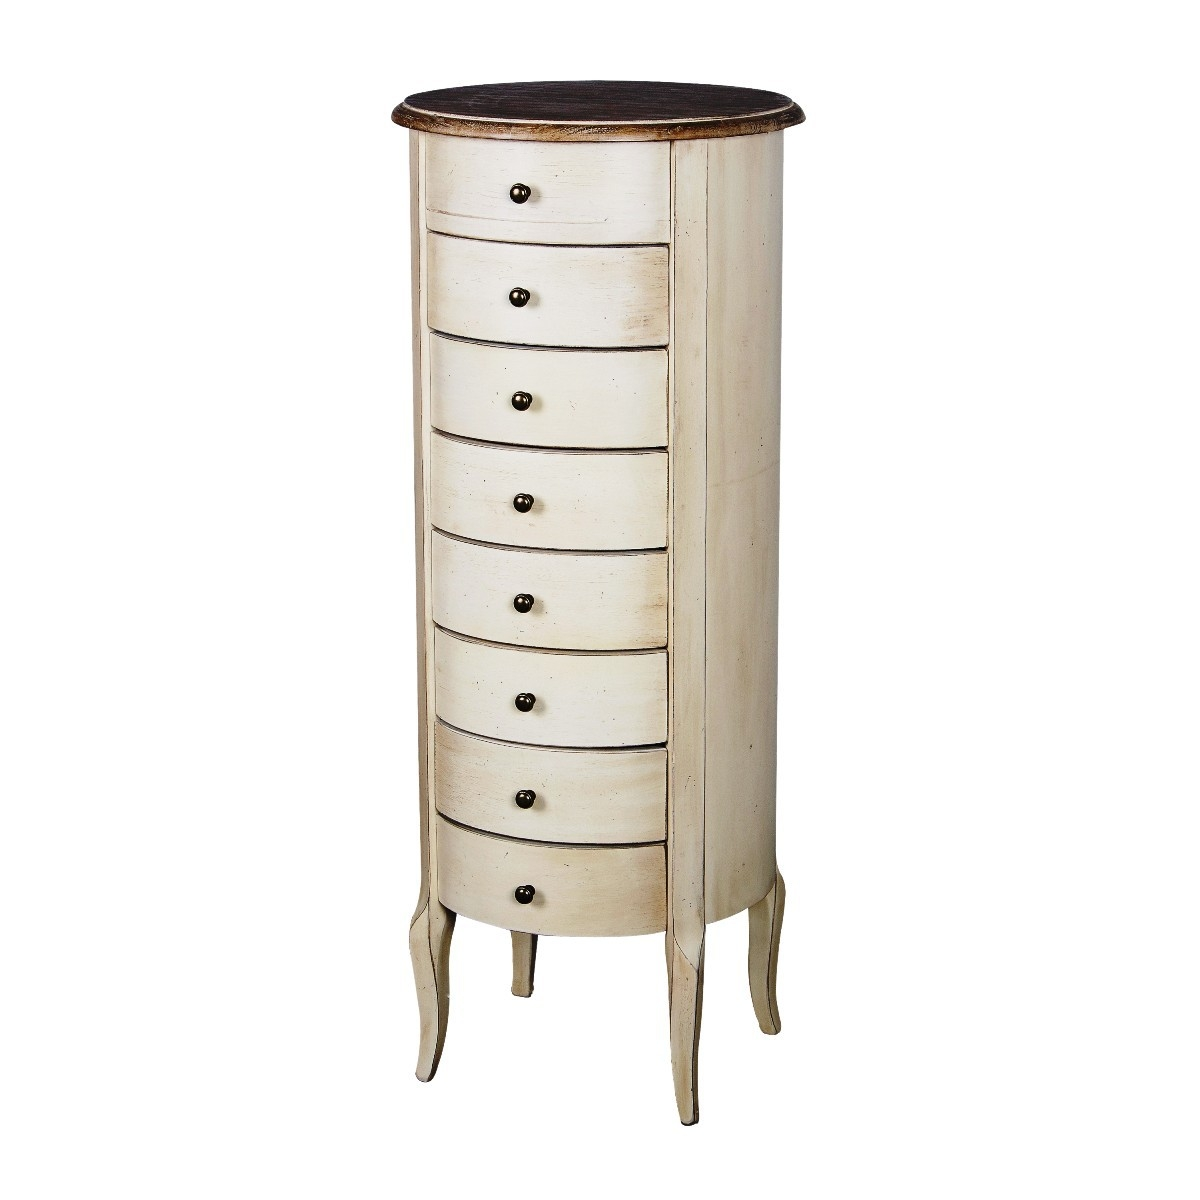 Cabinet din lemn de cauciuc si furnir, cu 8 sertare Limena LI838 Ivory / Light Brown, l40xA40xH98 cm imagine